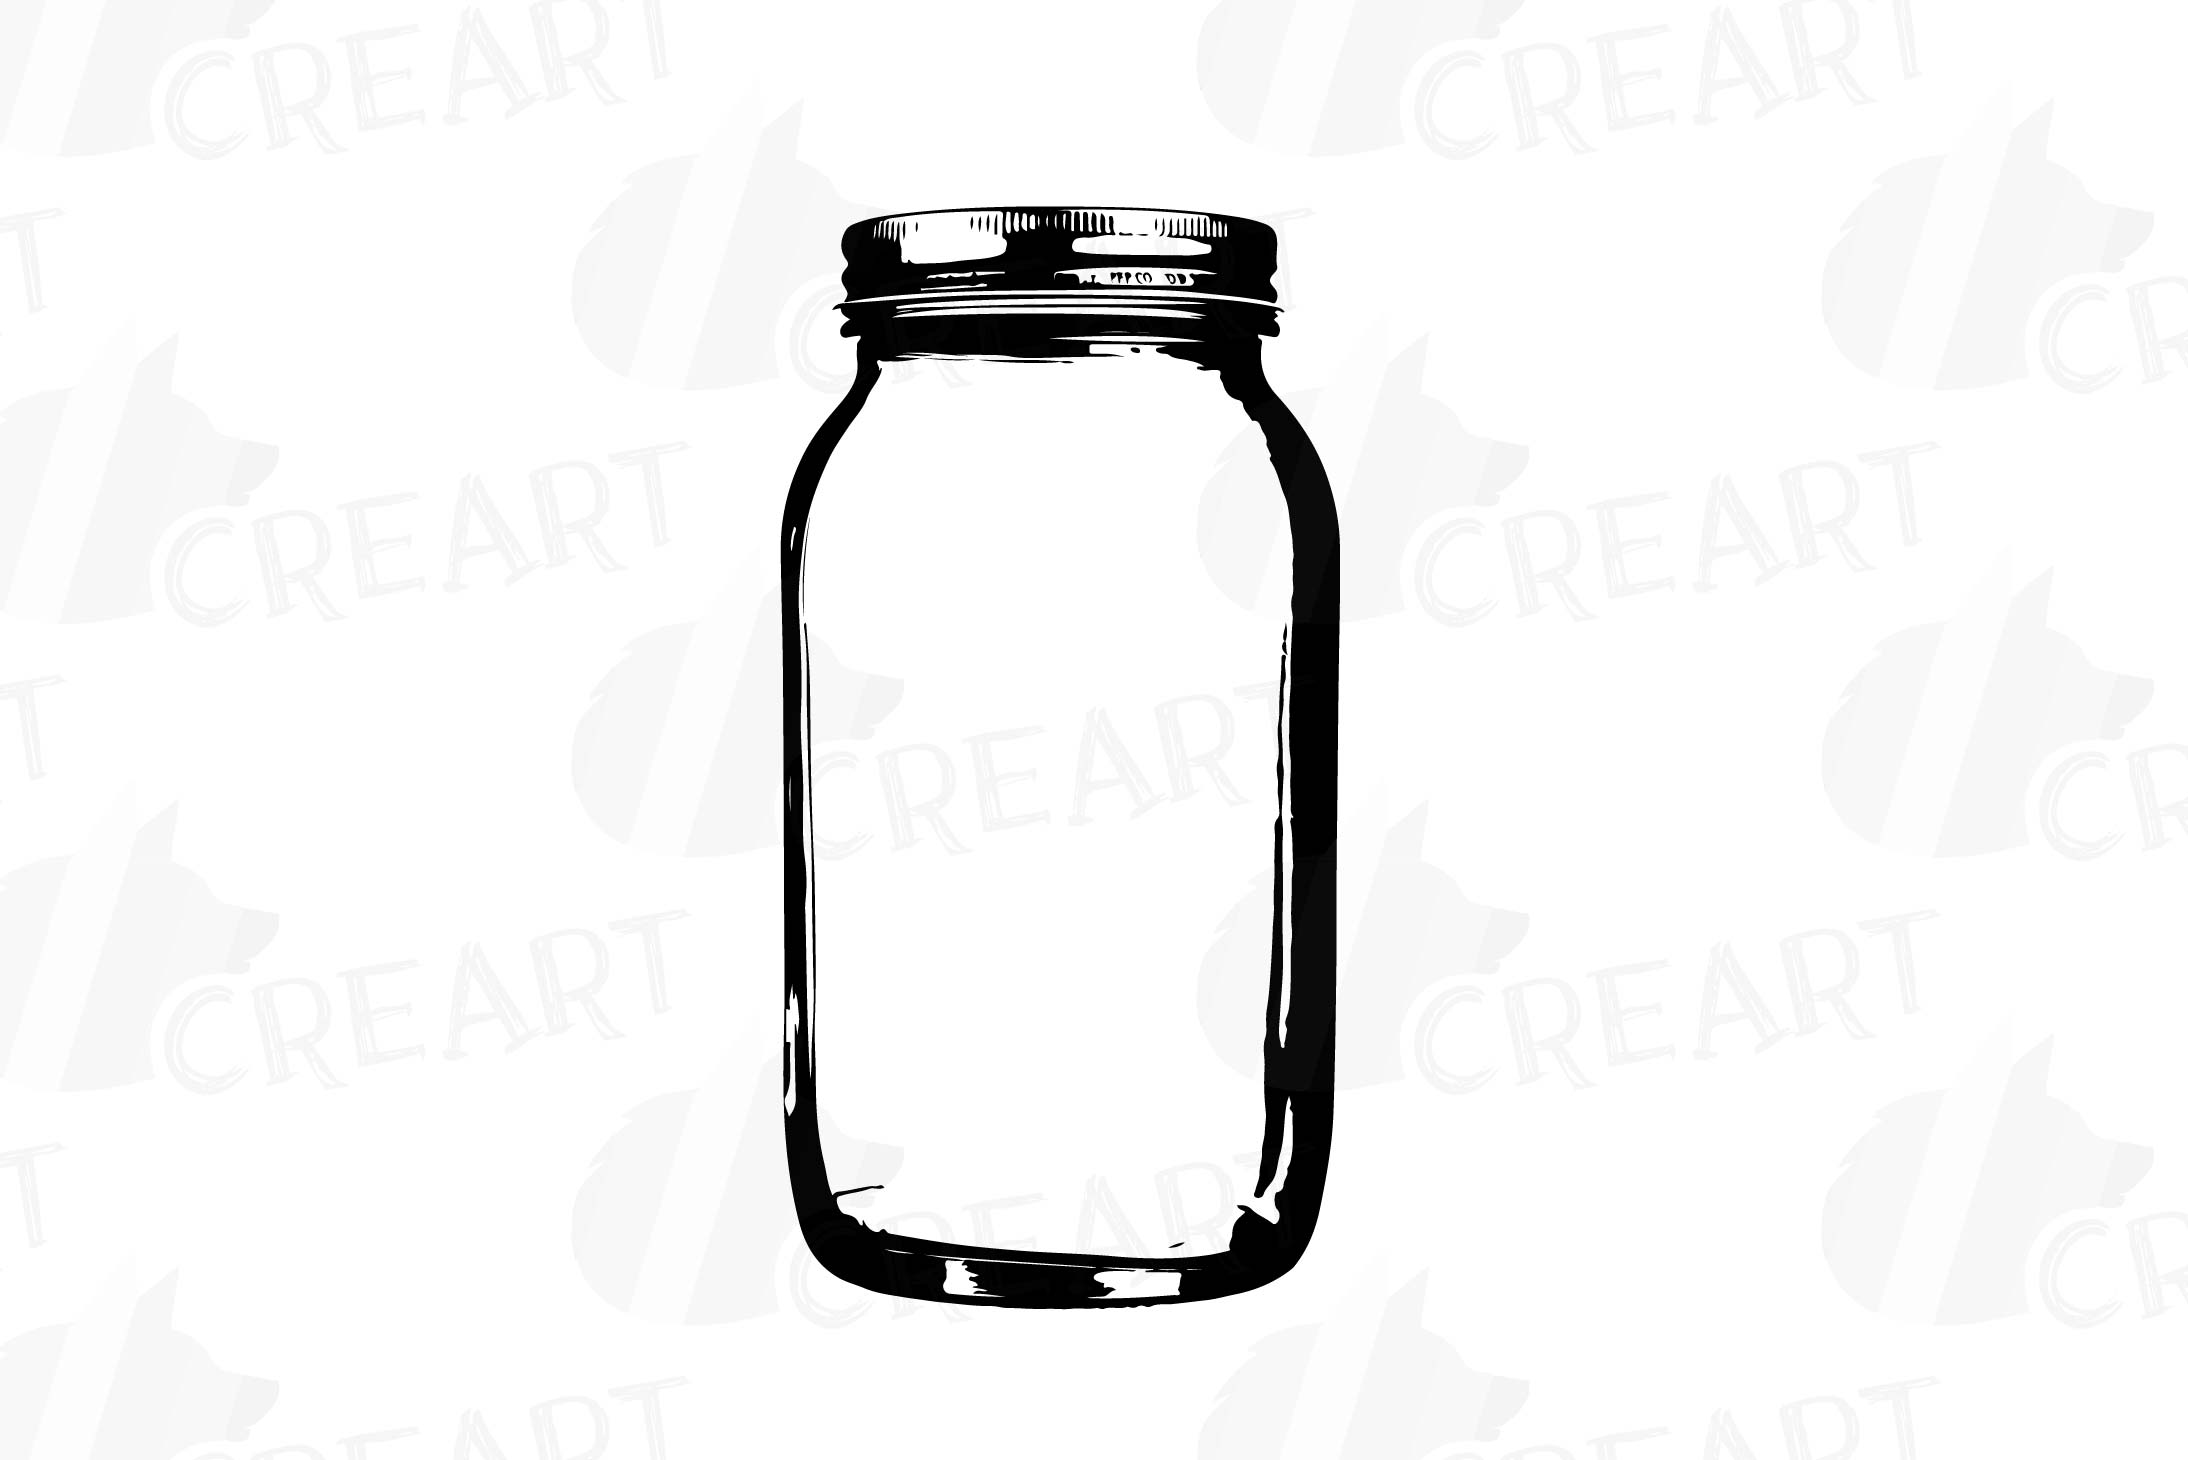 mason jars clipart glass jars clip art design bundles rh designbundles net mason jar clip art black and white mason jar clip art black and white